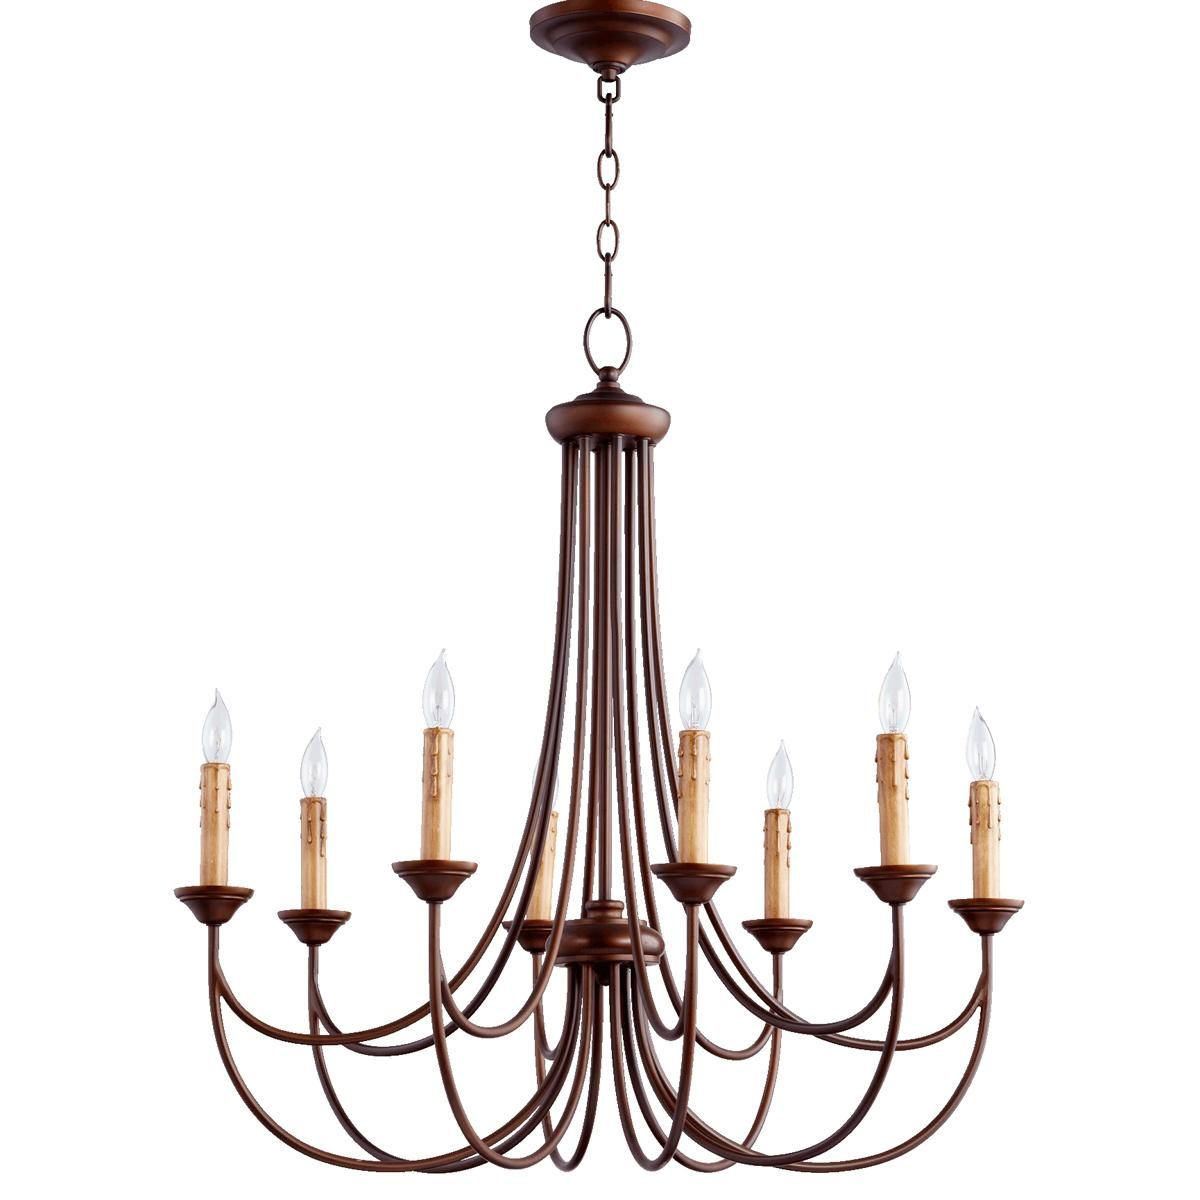 Transitional colonial chandelier small this is a quorum lighting fixture